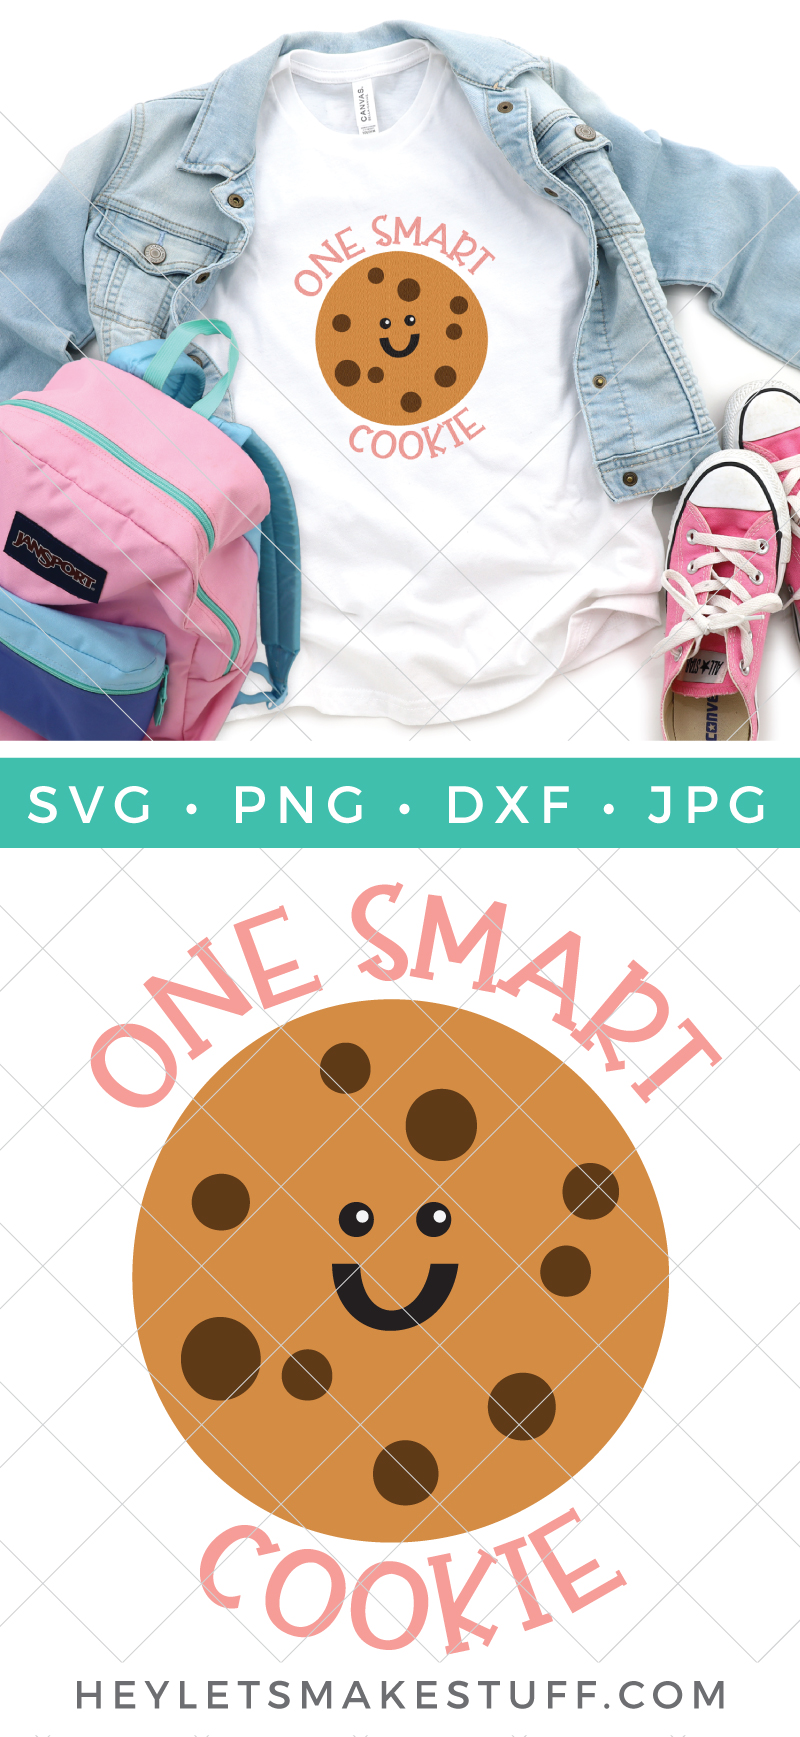 If you've got a little one who is smart, sweet and styling then this One Smart Cookie SVG is perfect. Add some cookie sass to tees, backpacks, lunchboxes, notebooks and more, just in time for the new school year. via @heyletsmakestuf